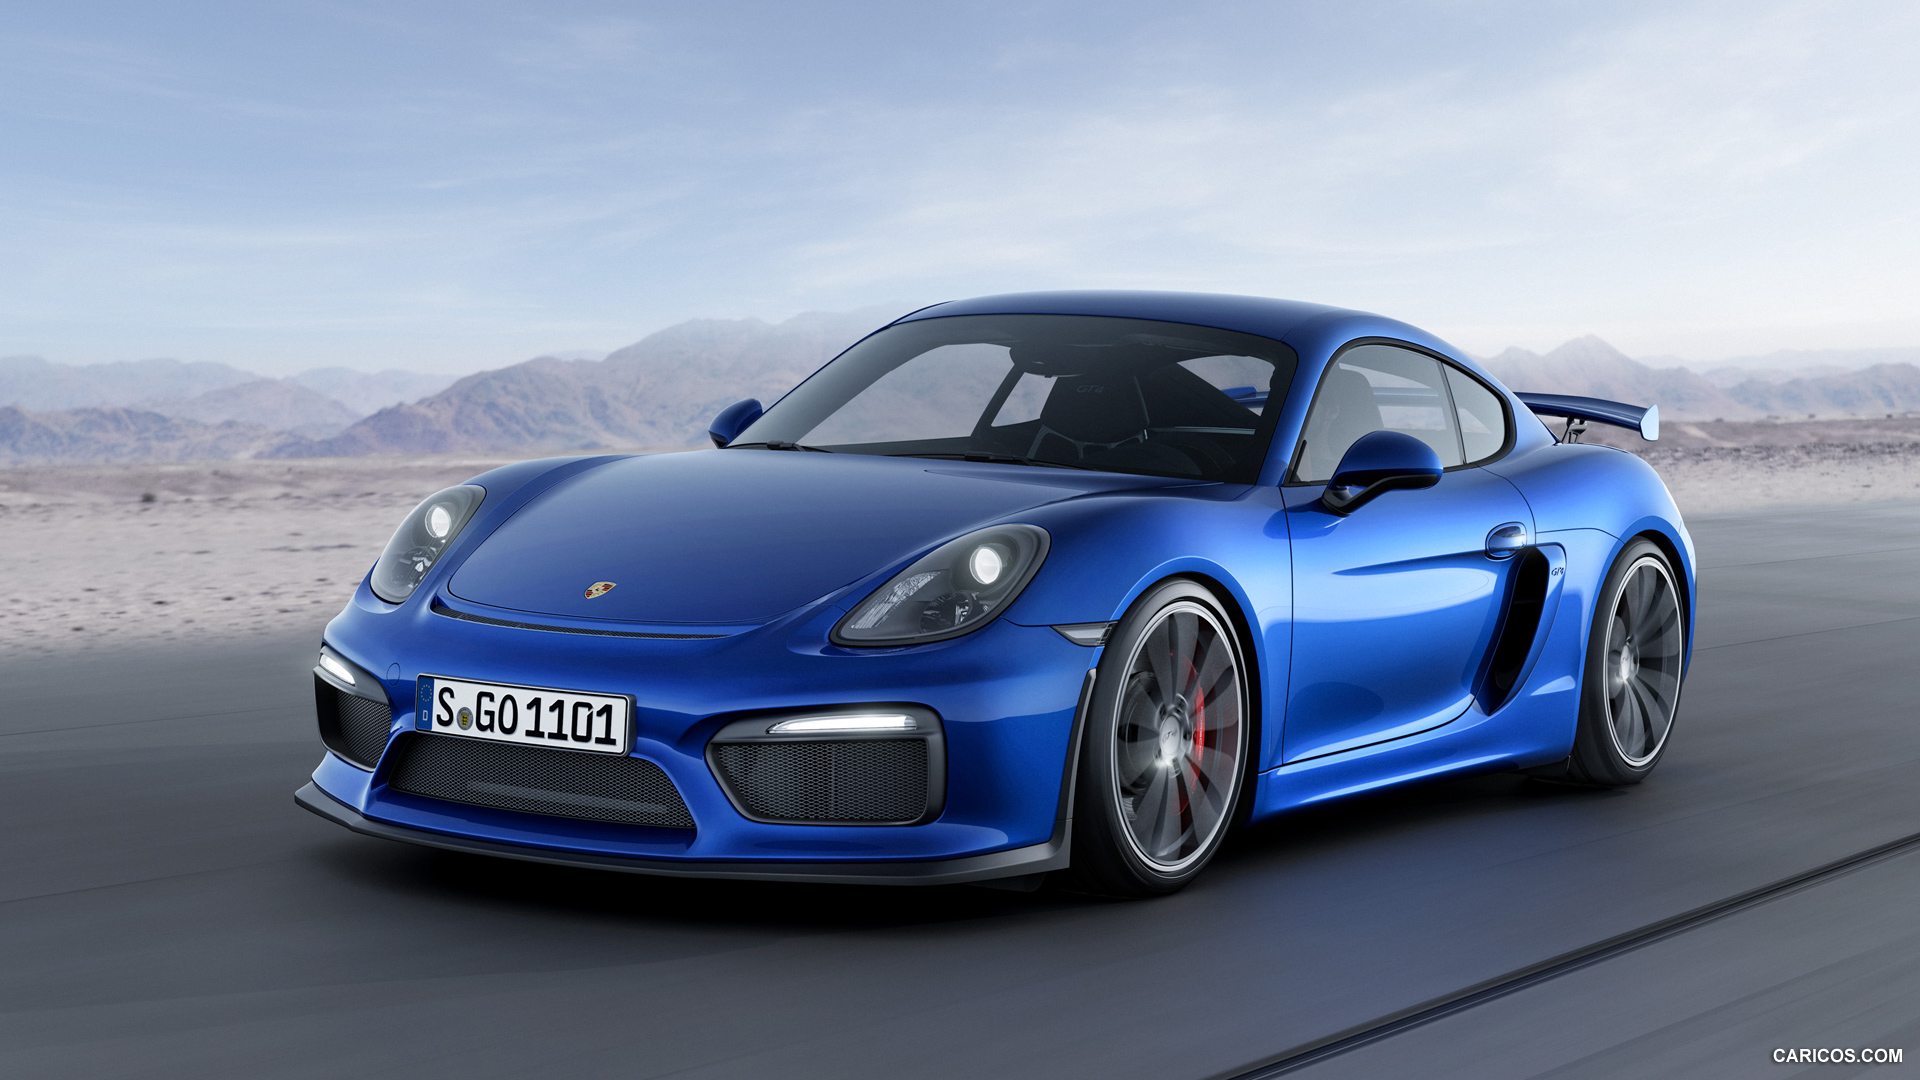 1920x1080 - Porsche Cayman Wallpapers 8